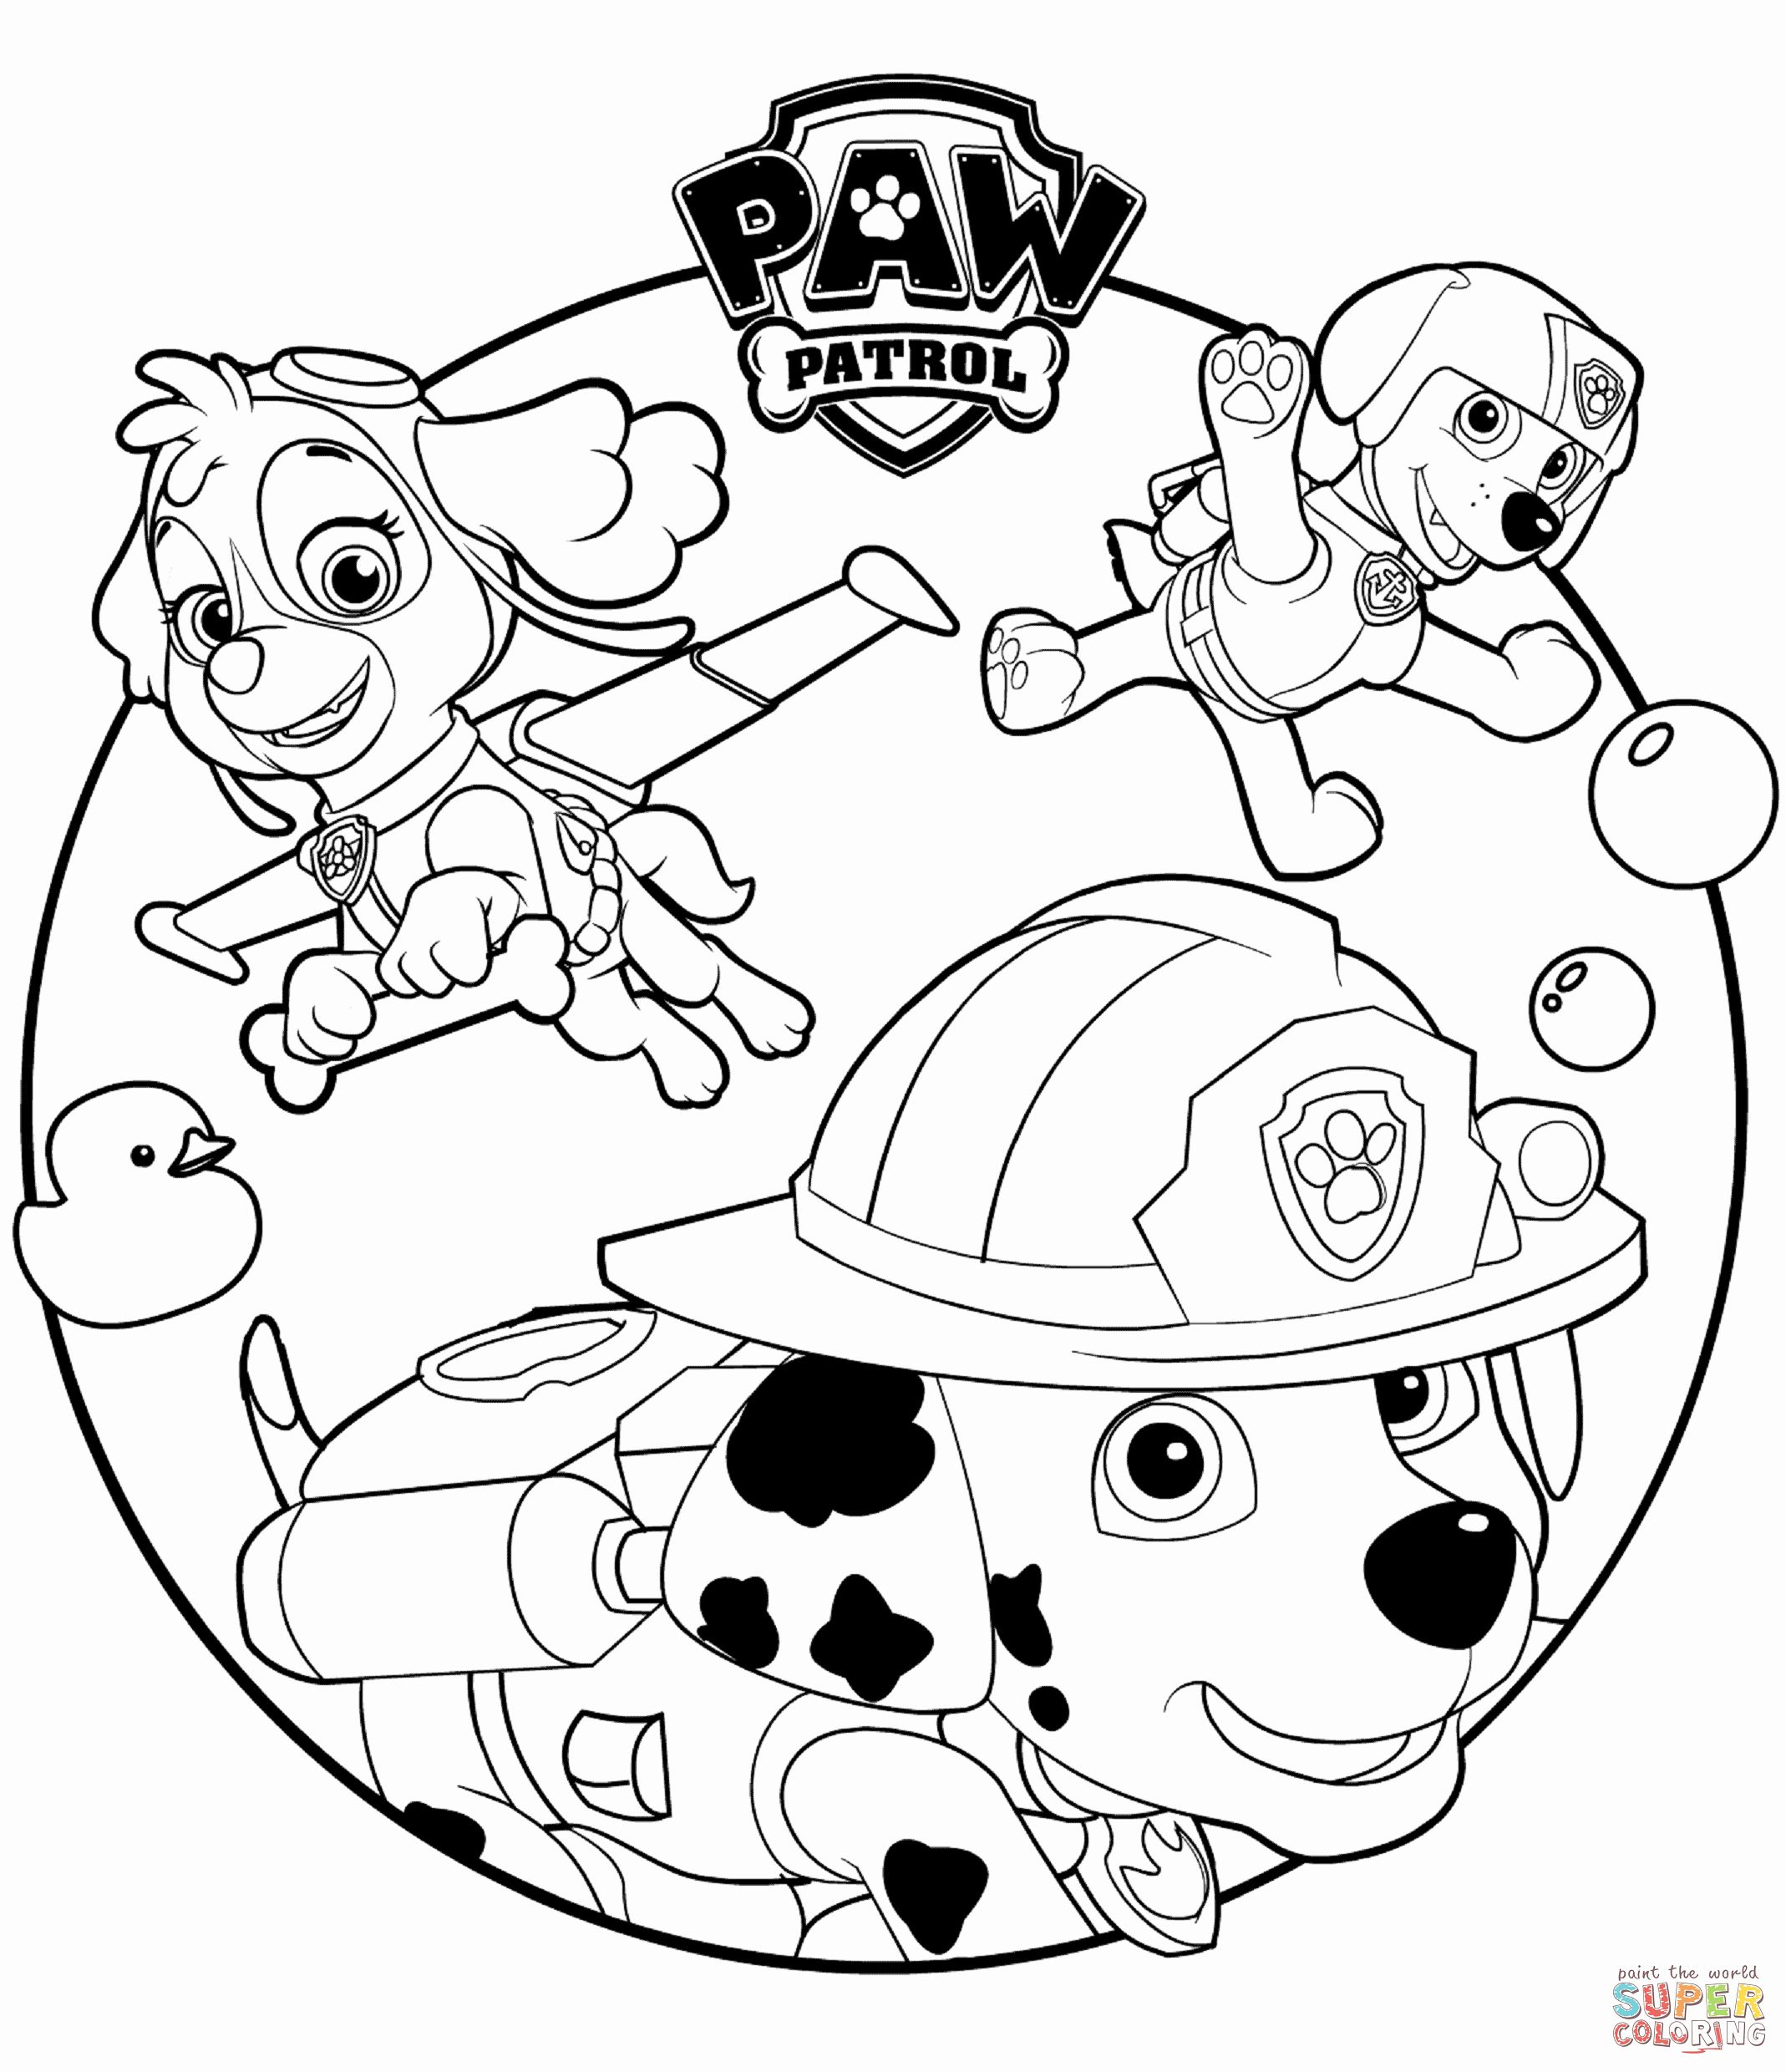 Paw Patrol Marshall Coloring Page Elegant Paw Patrol Coloring Pages Marshall And Firetruck In 2020 Paw Patrol Coloring Pages Paw Patrol Coloring Free Coloring Pages